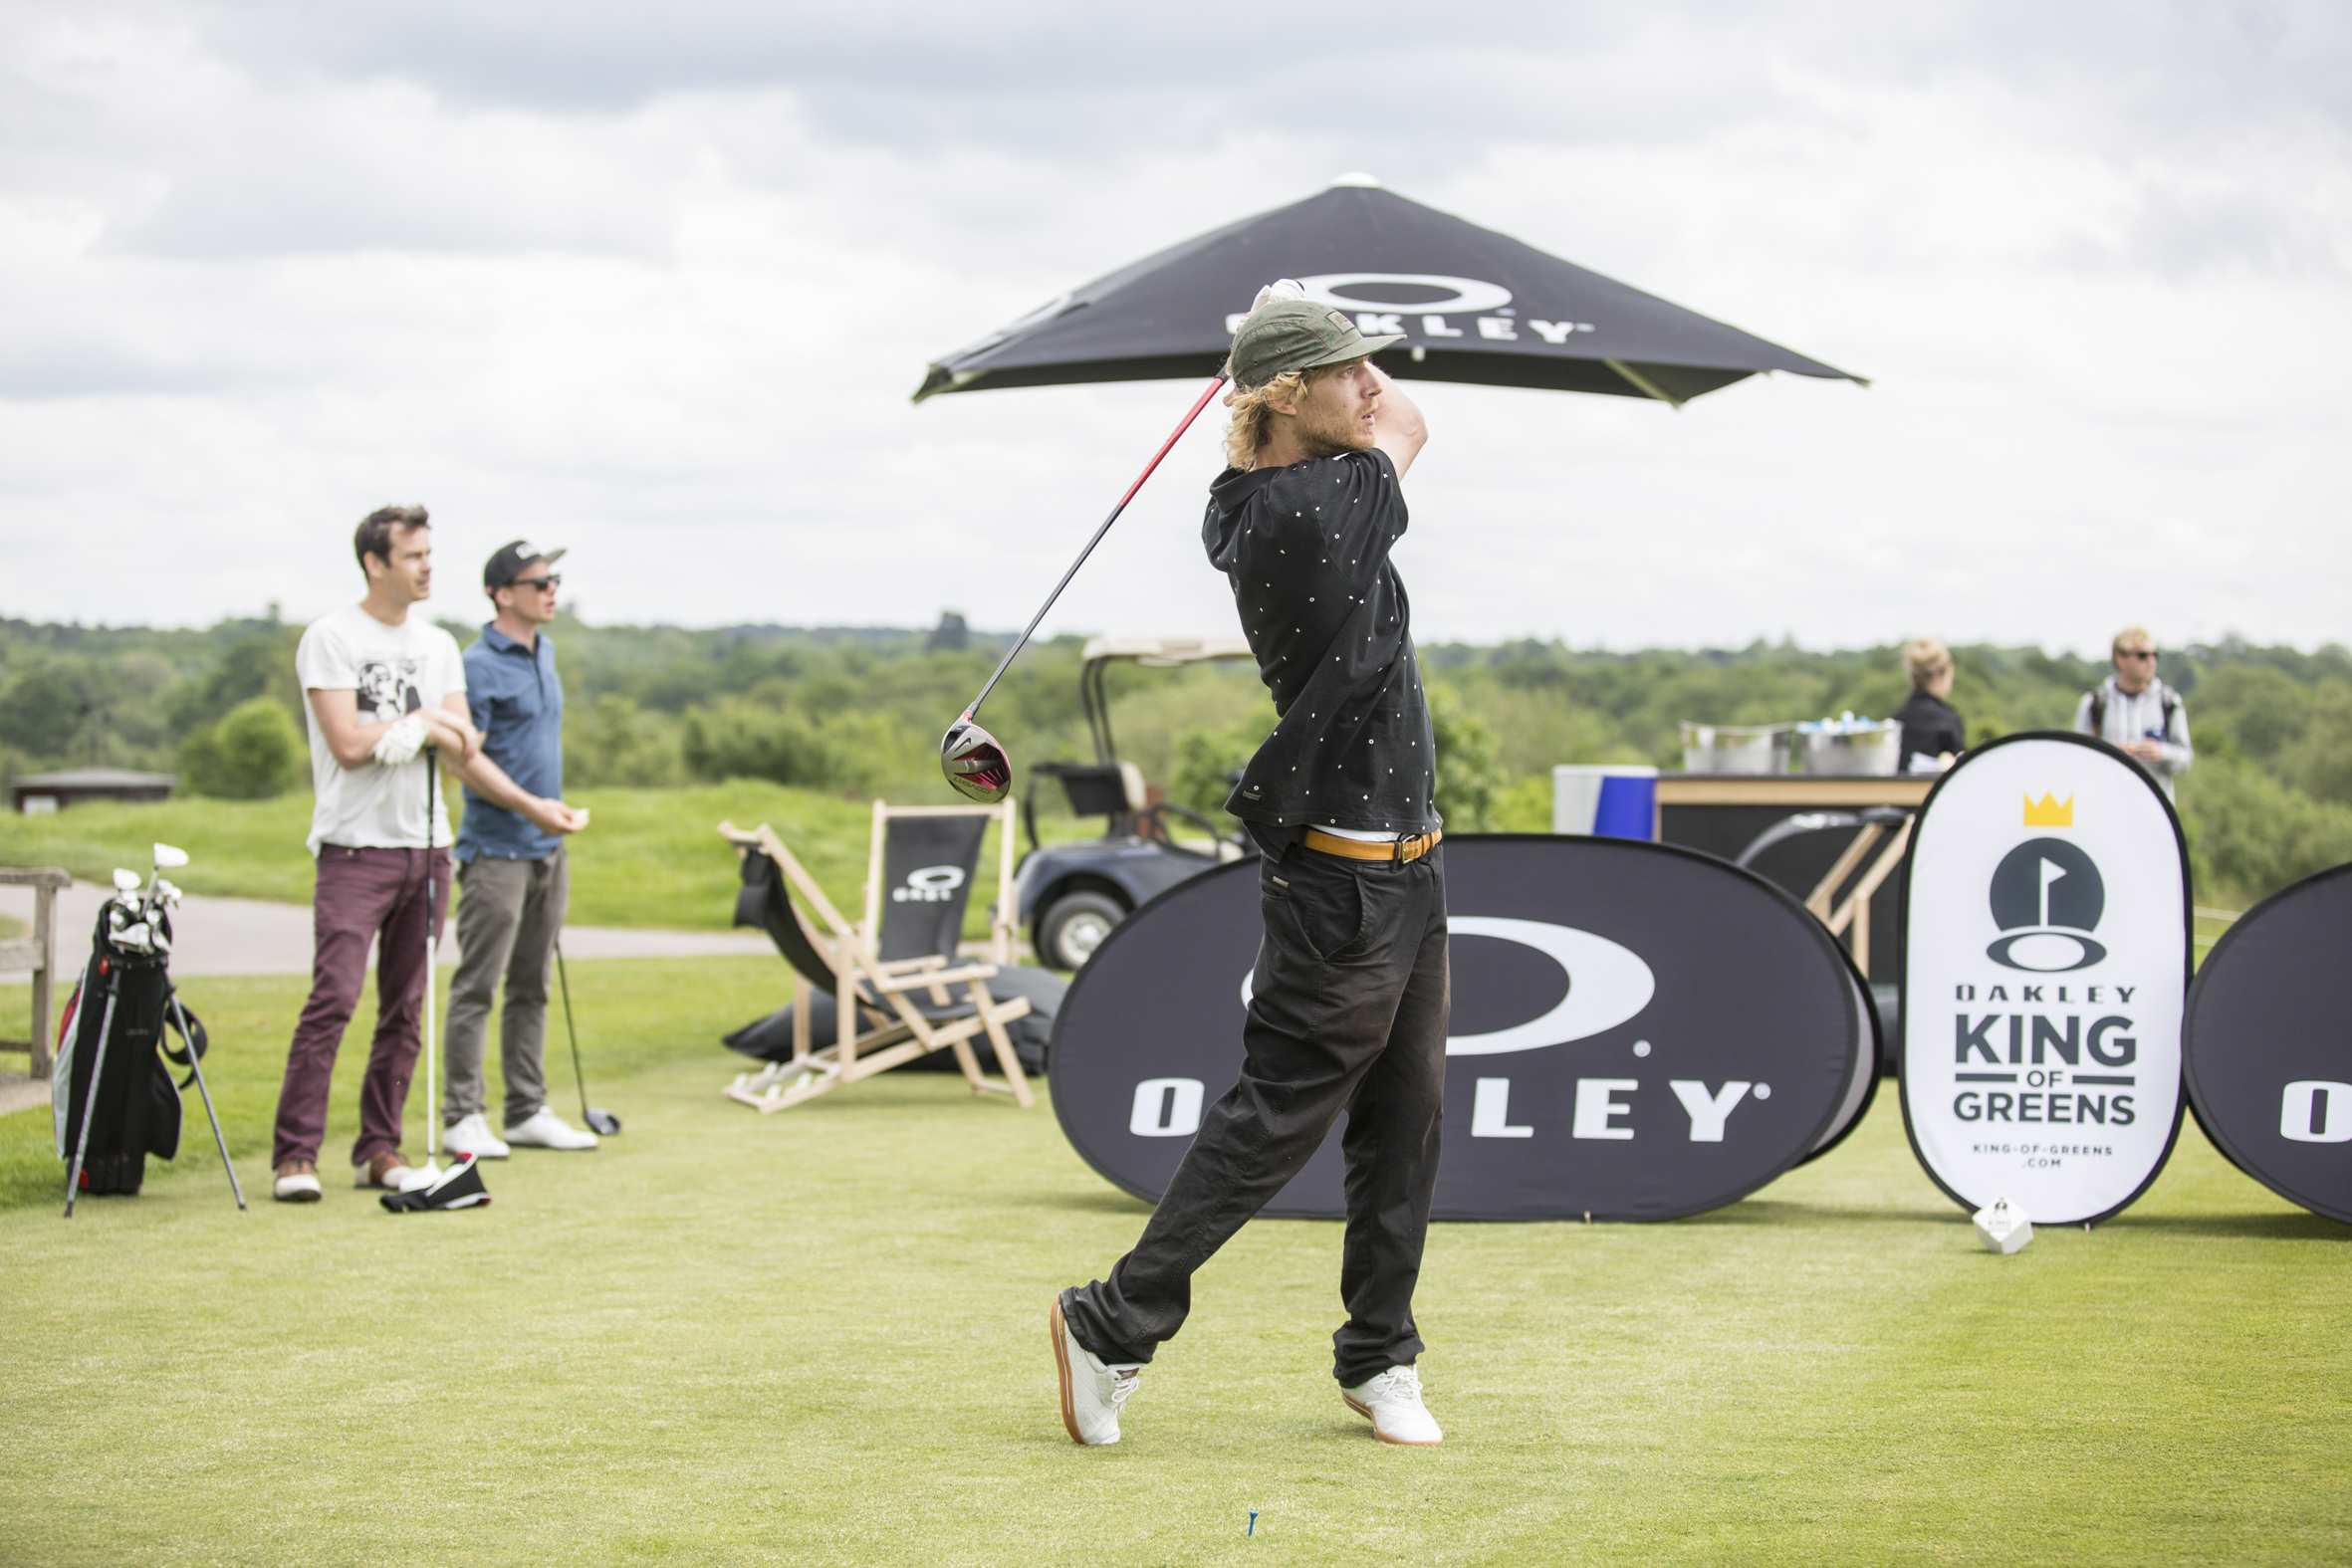 Oakley_King_of_Greens_Pettersson_Tritscher_Boal